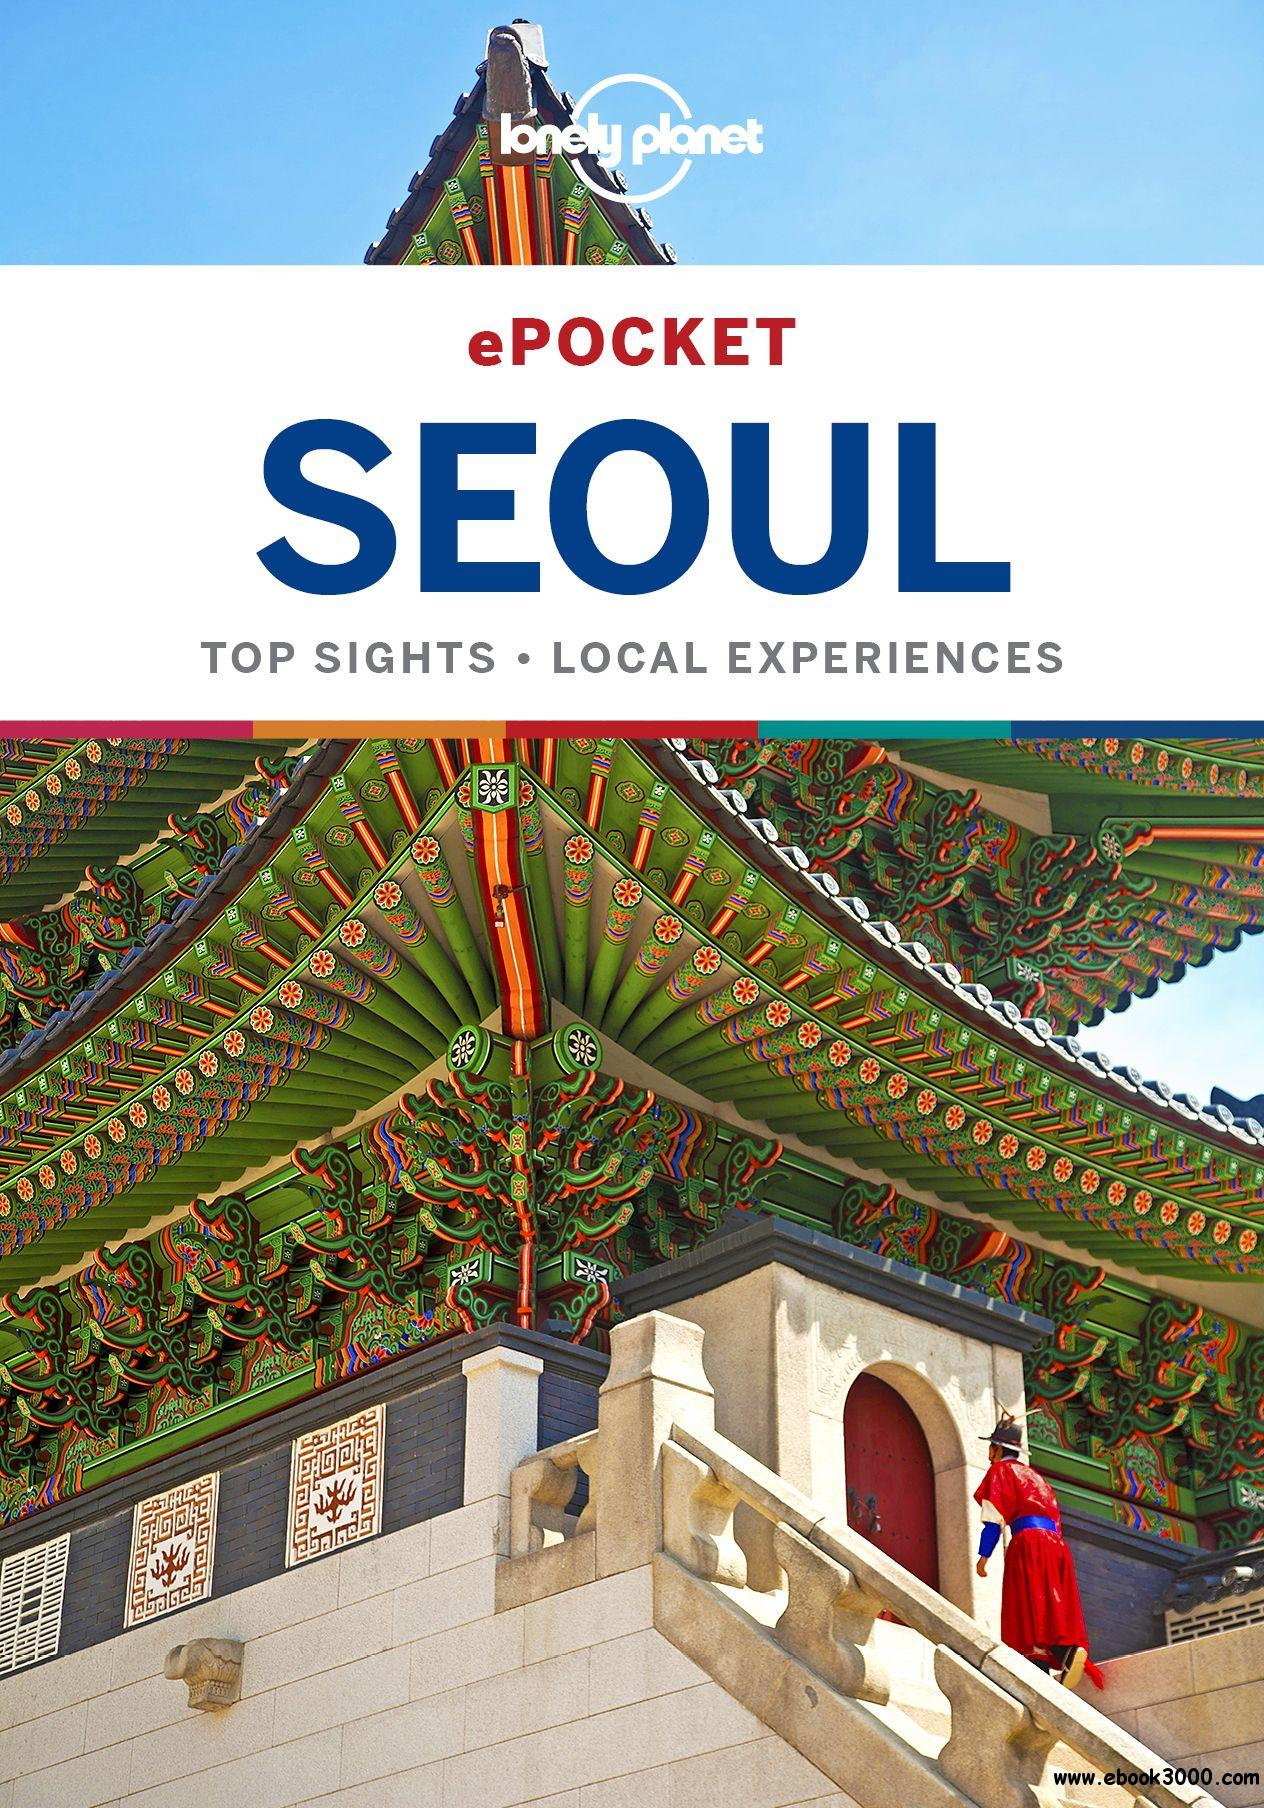 Lonely Planet Pocket Seoul (Travel Guide), 2nd Edition